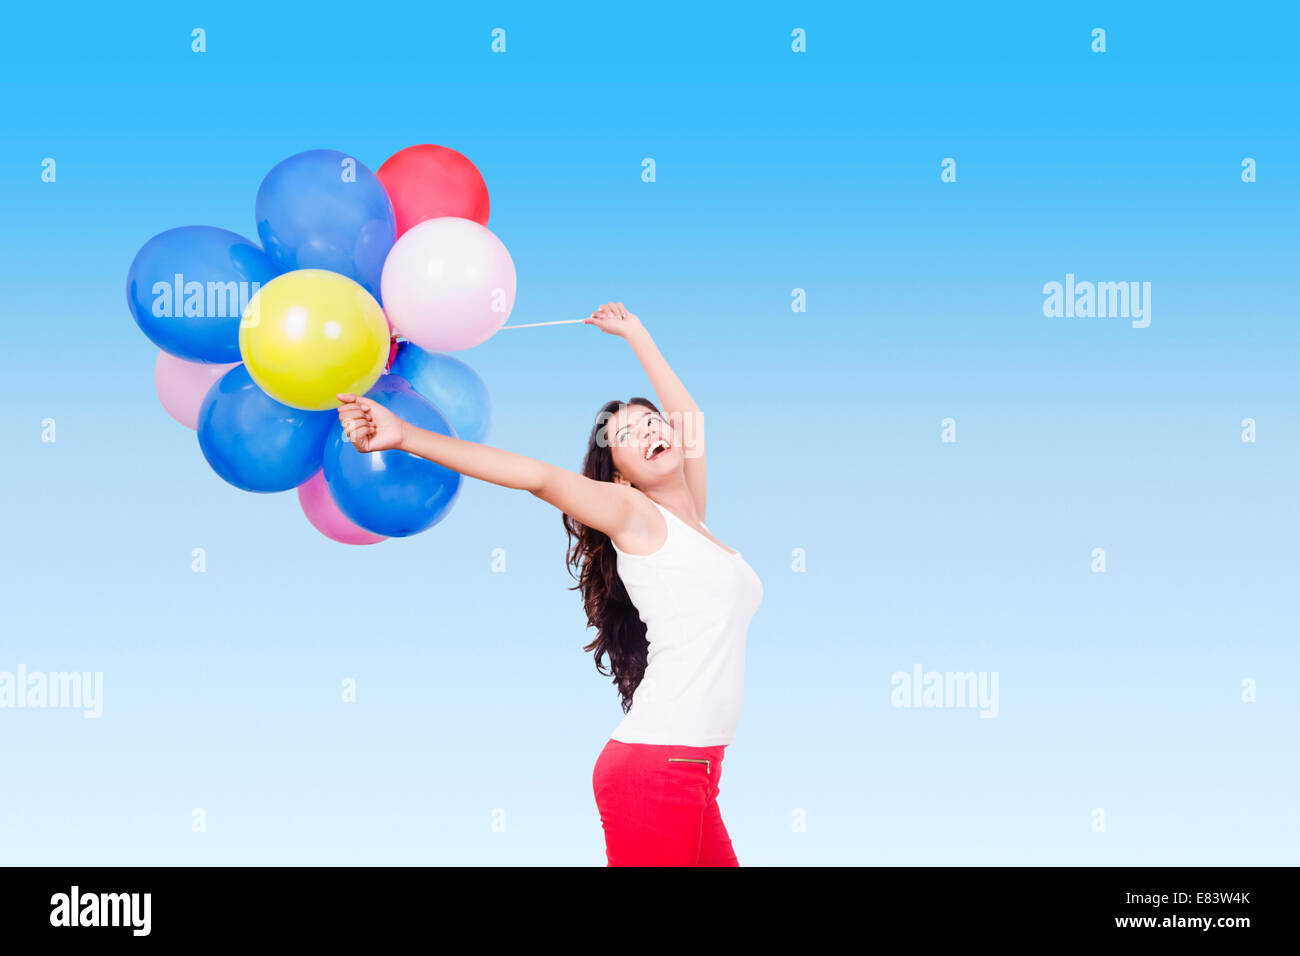 indian Girl Park Fun Balloon - Stock Image